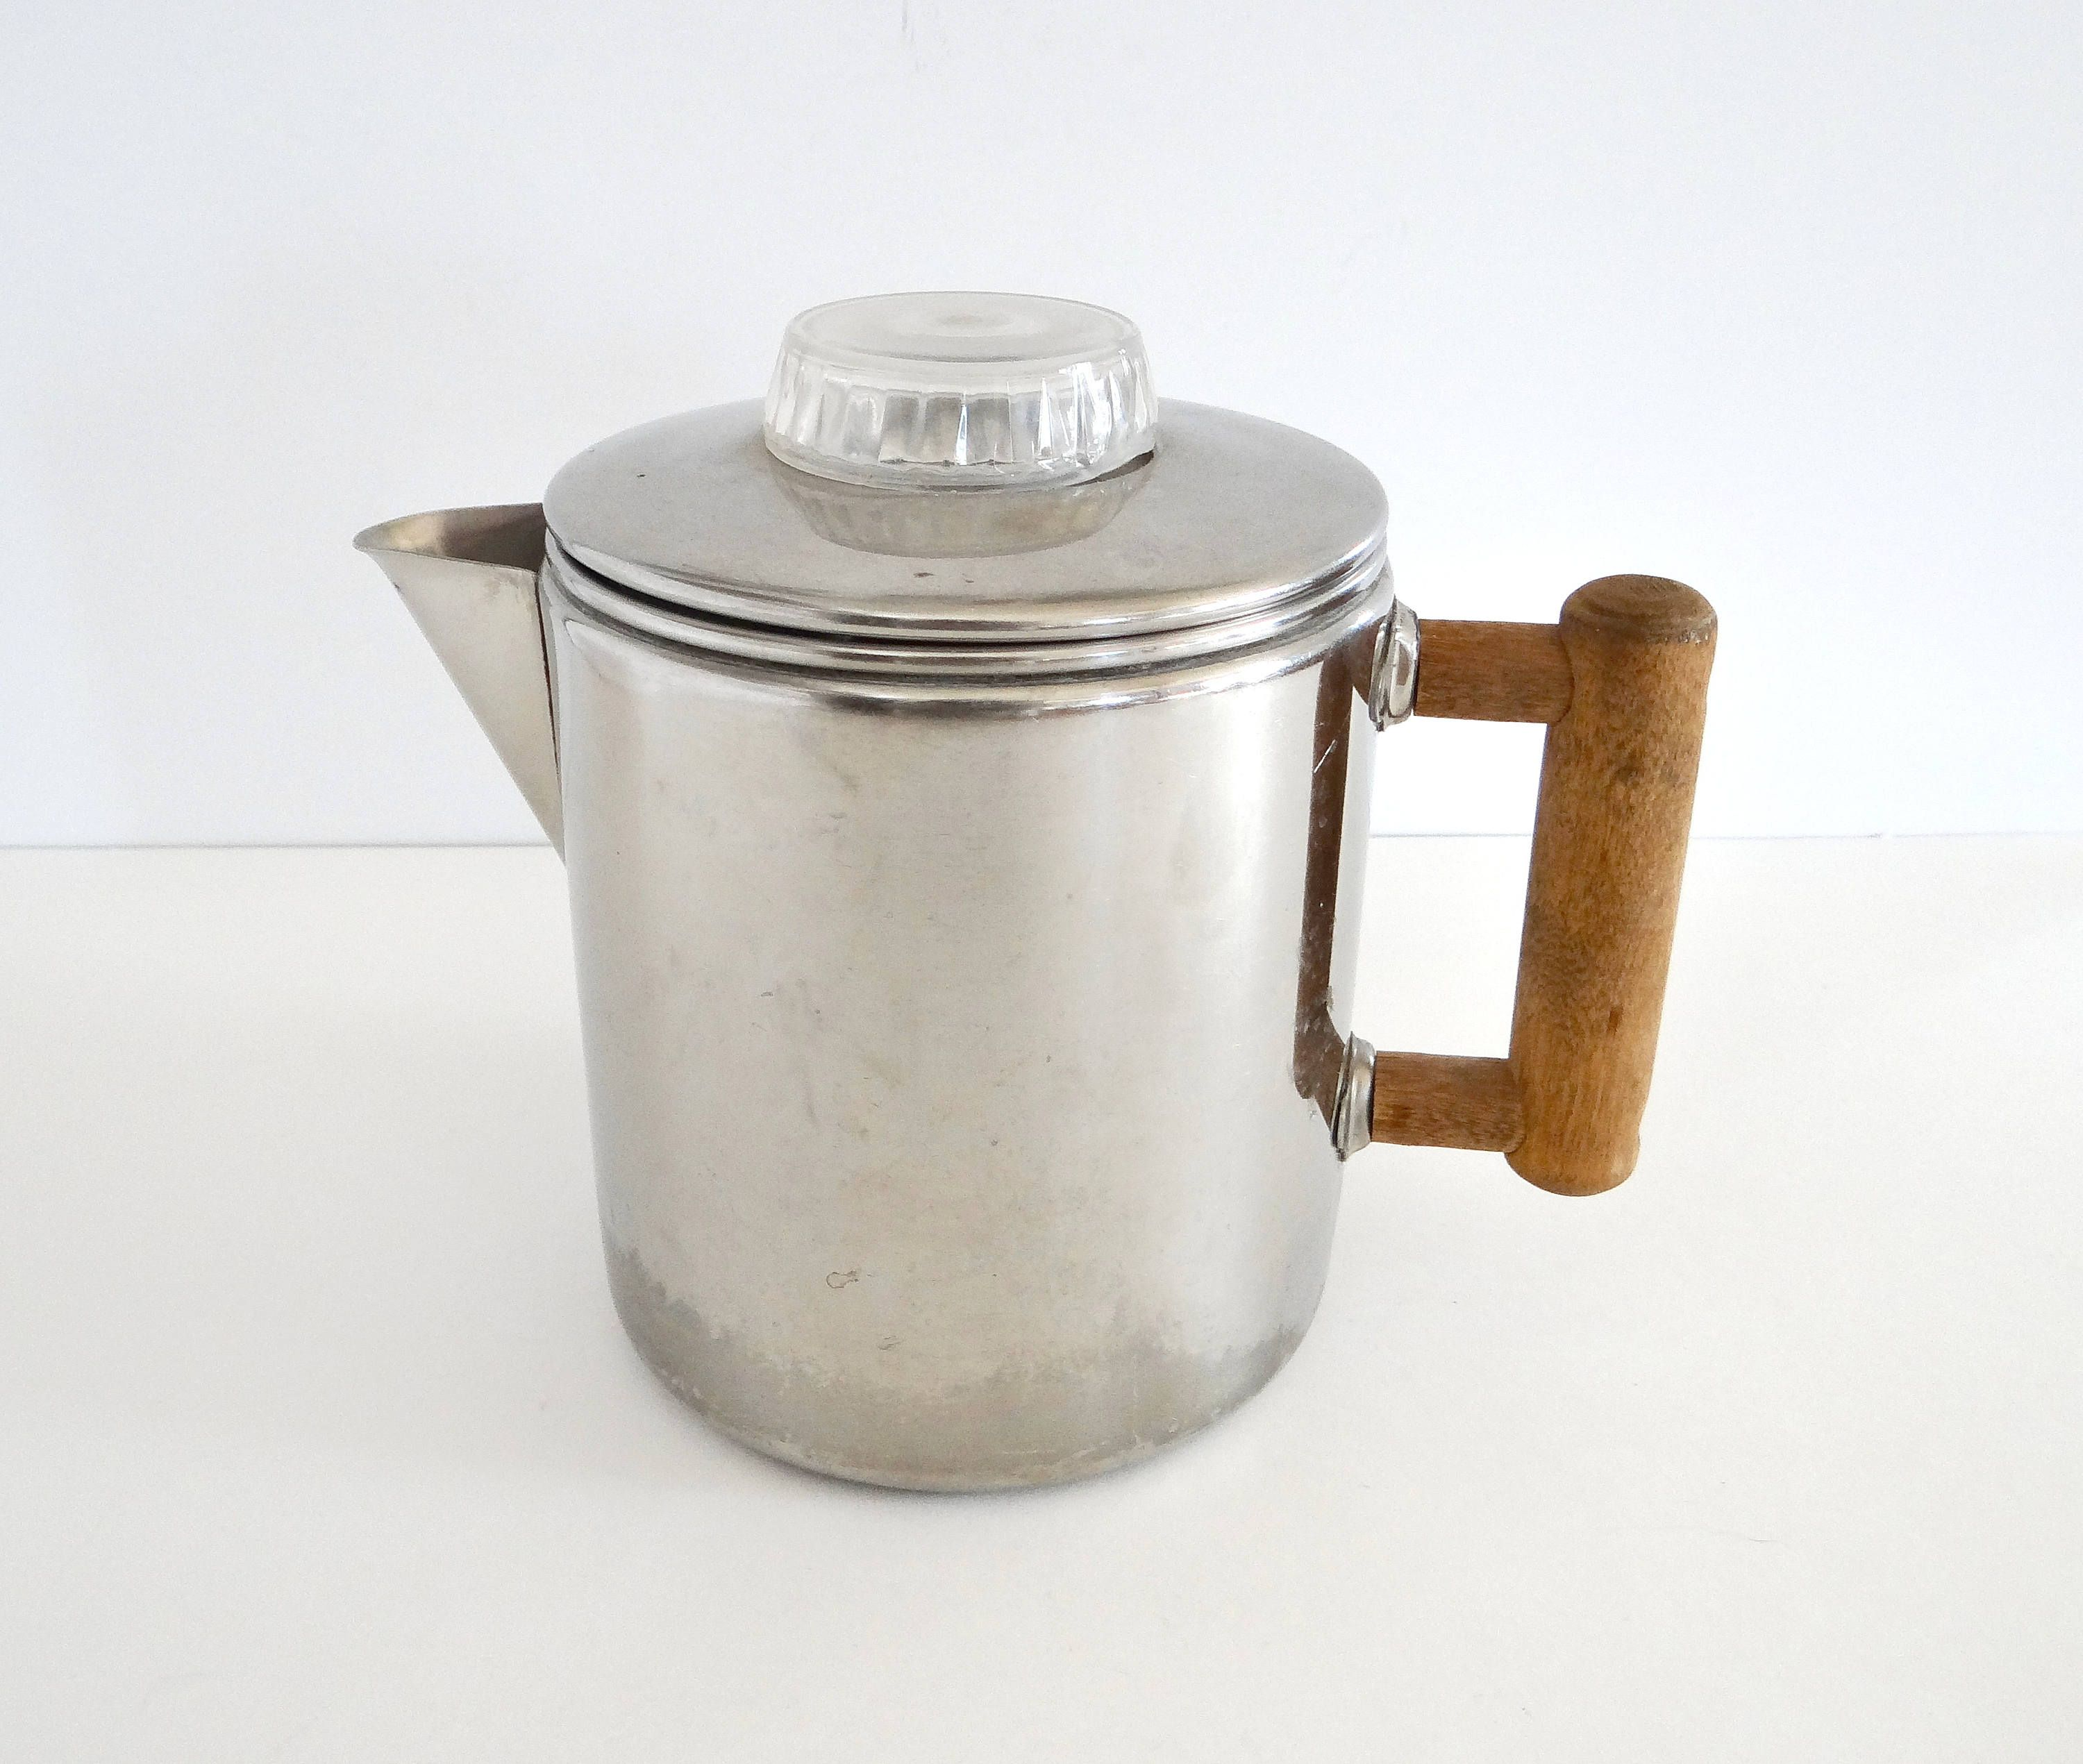 Vollrath Stainless Steel Stovetop Percolator Coffee Pot by